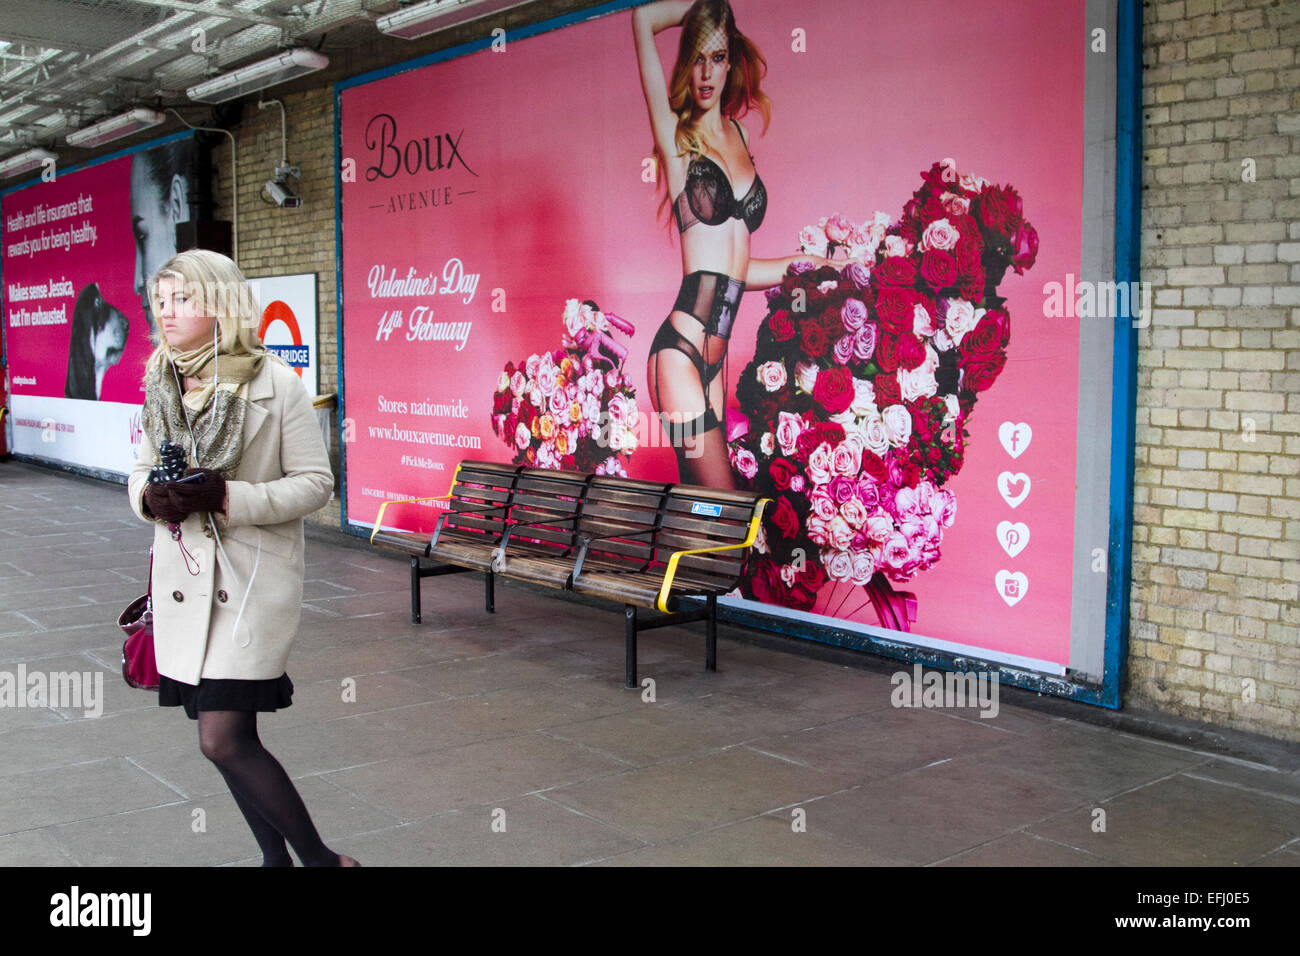 London, UK. 5th February, 2015. A commuter stands on  the platform at  Putney Bridge Station in front of a giant Stock Photo